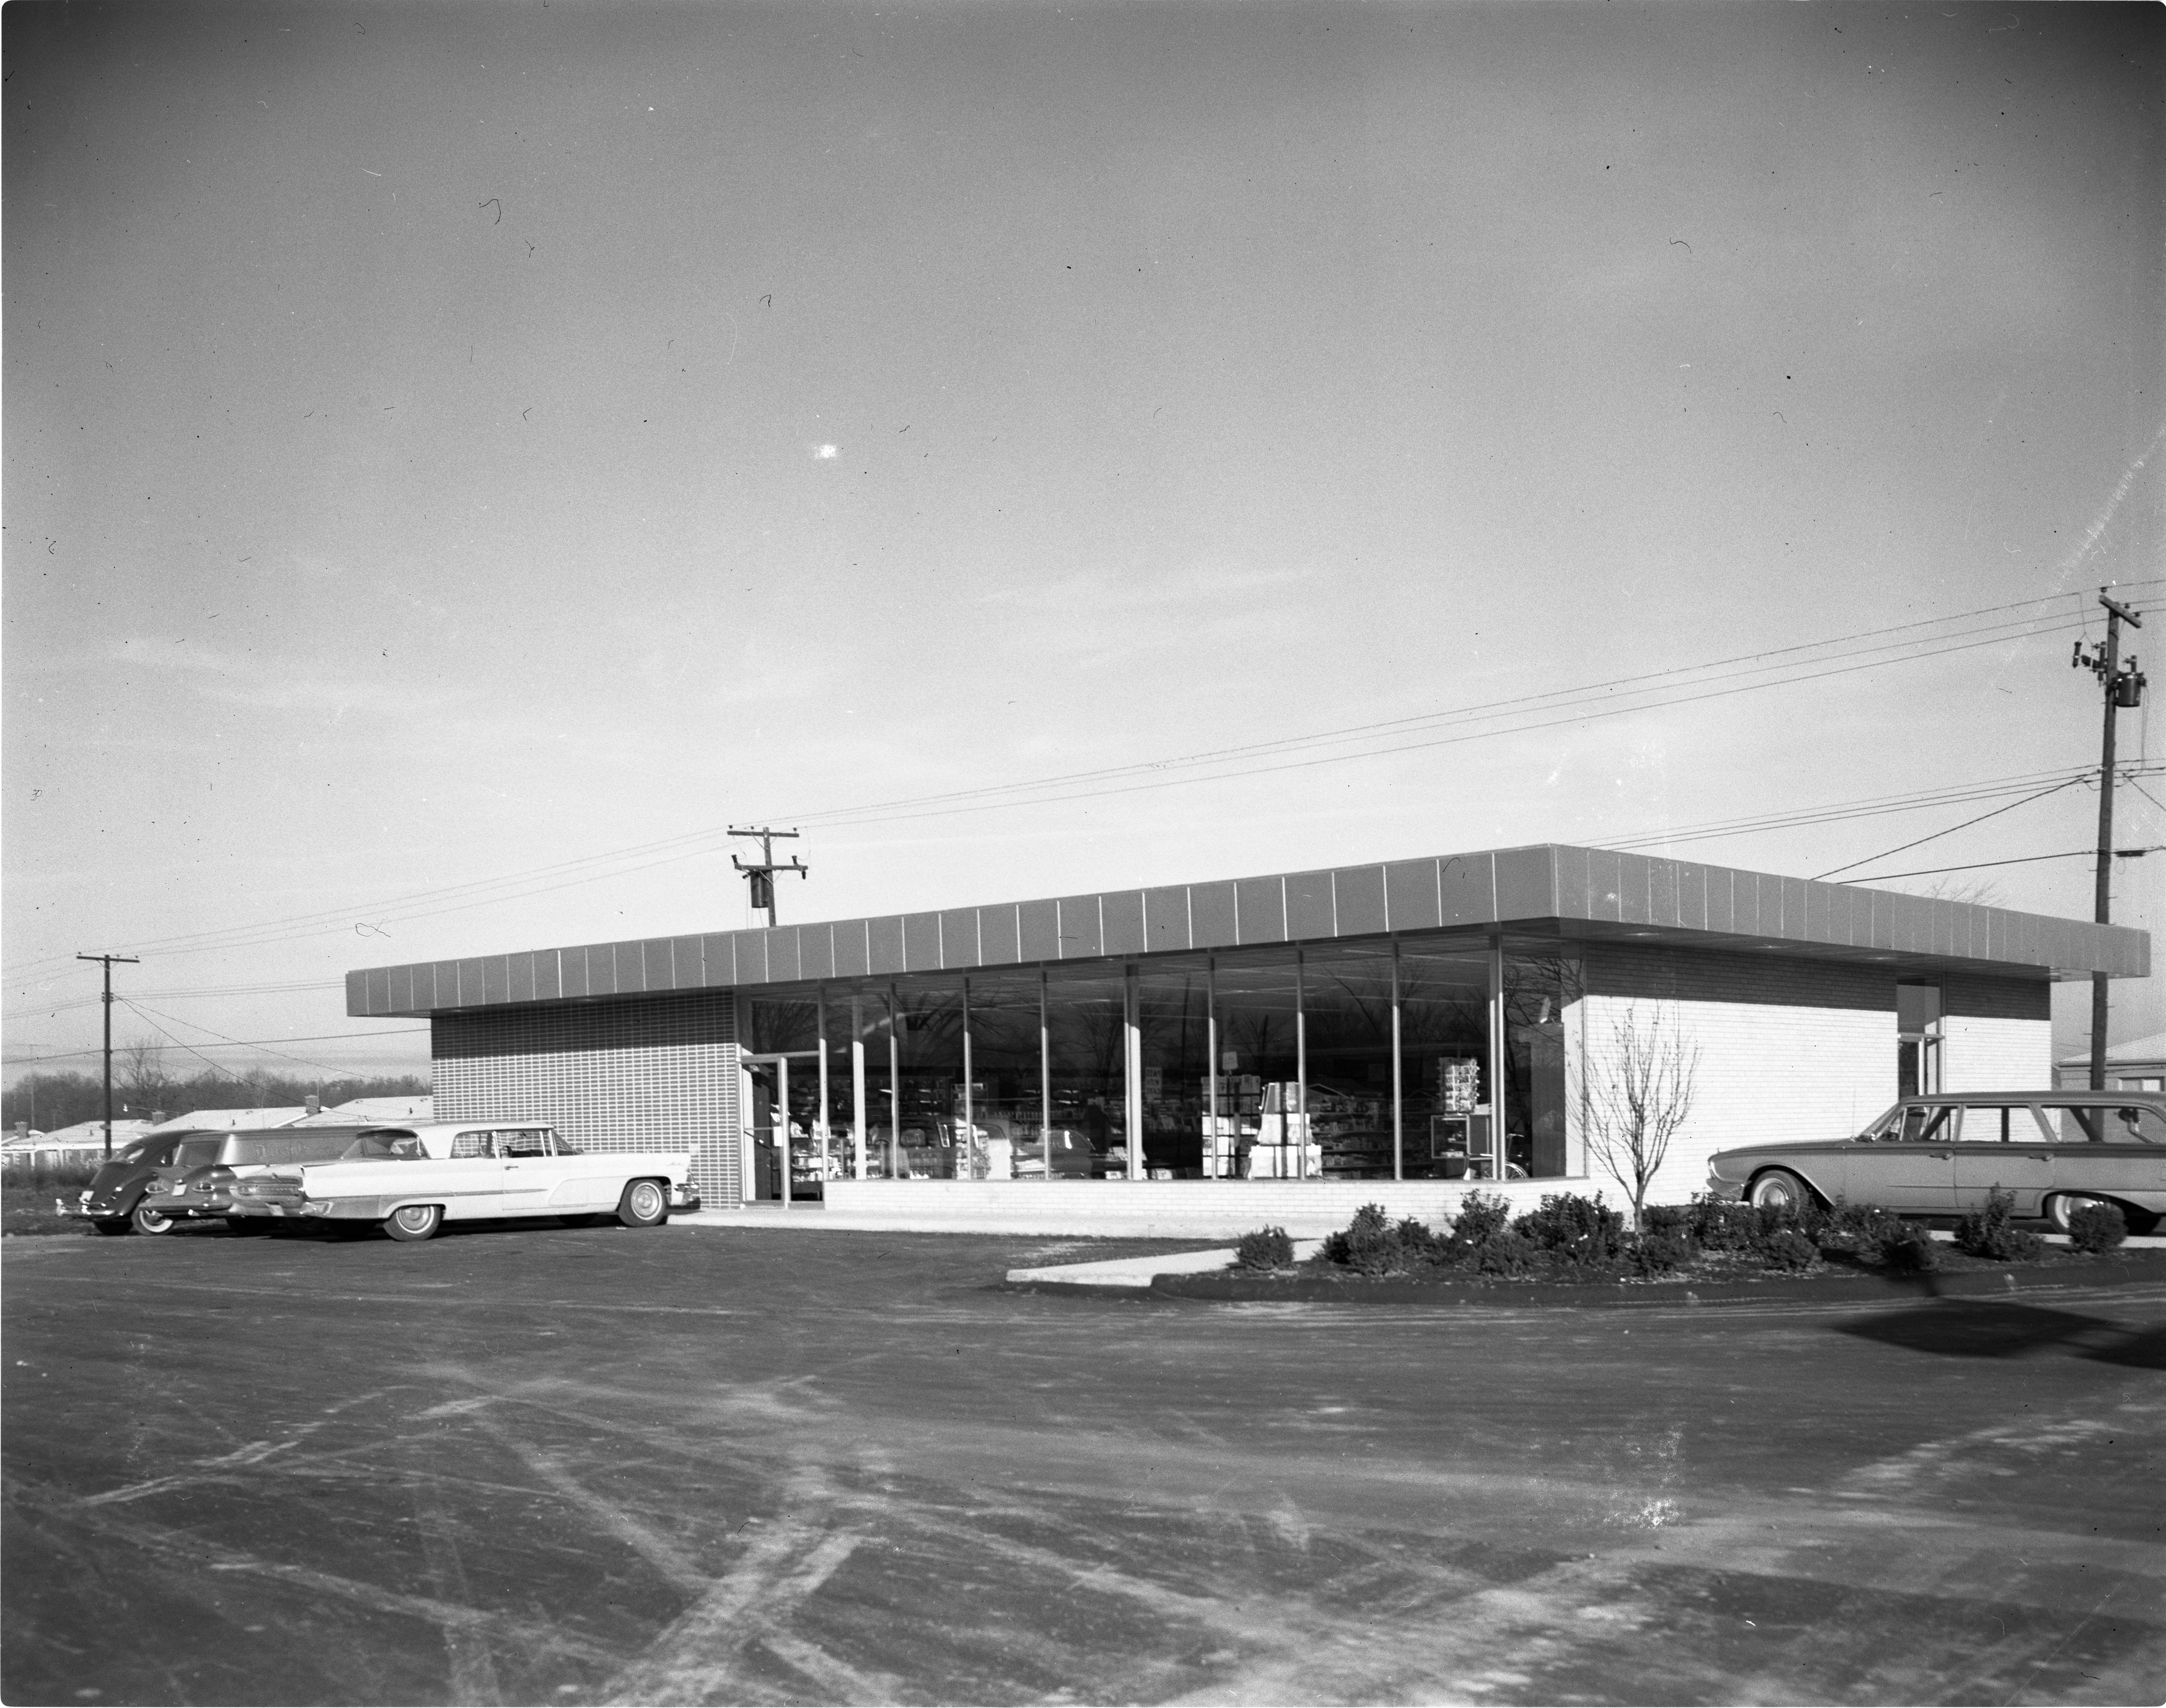 New Richardson's Pharmacy Store In Ypsilanti, November 26, 1962 image